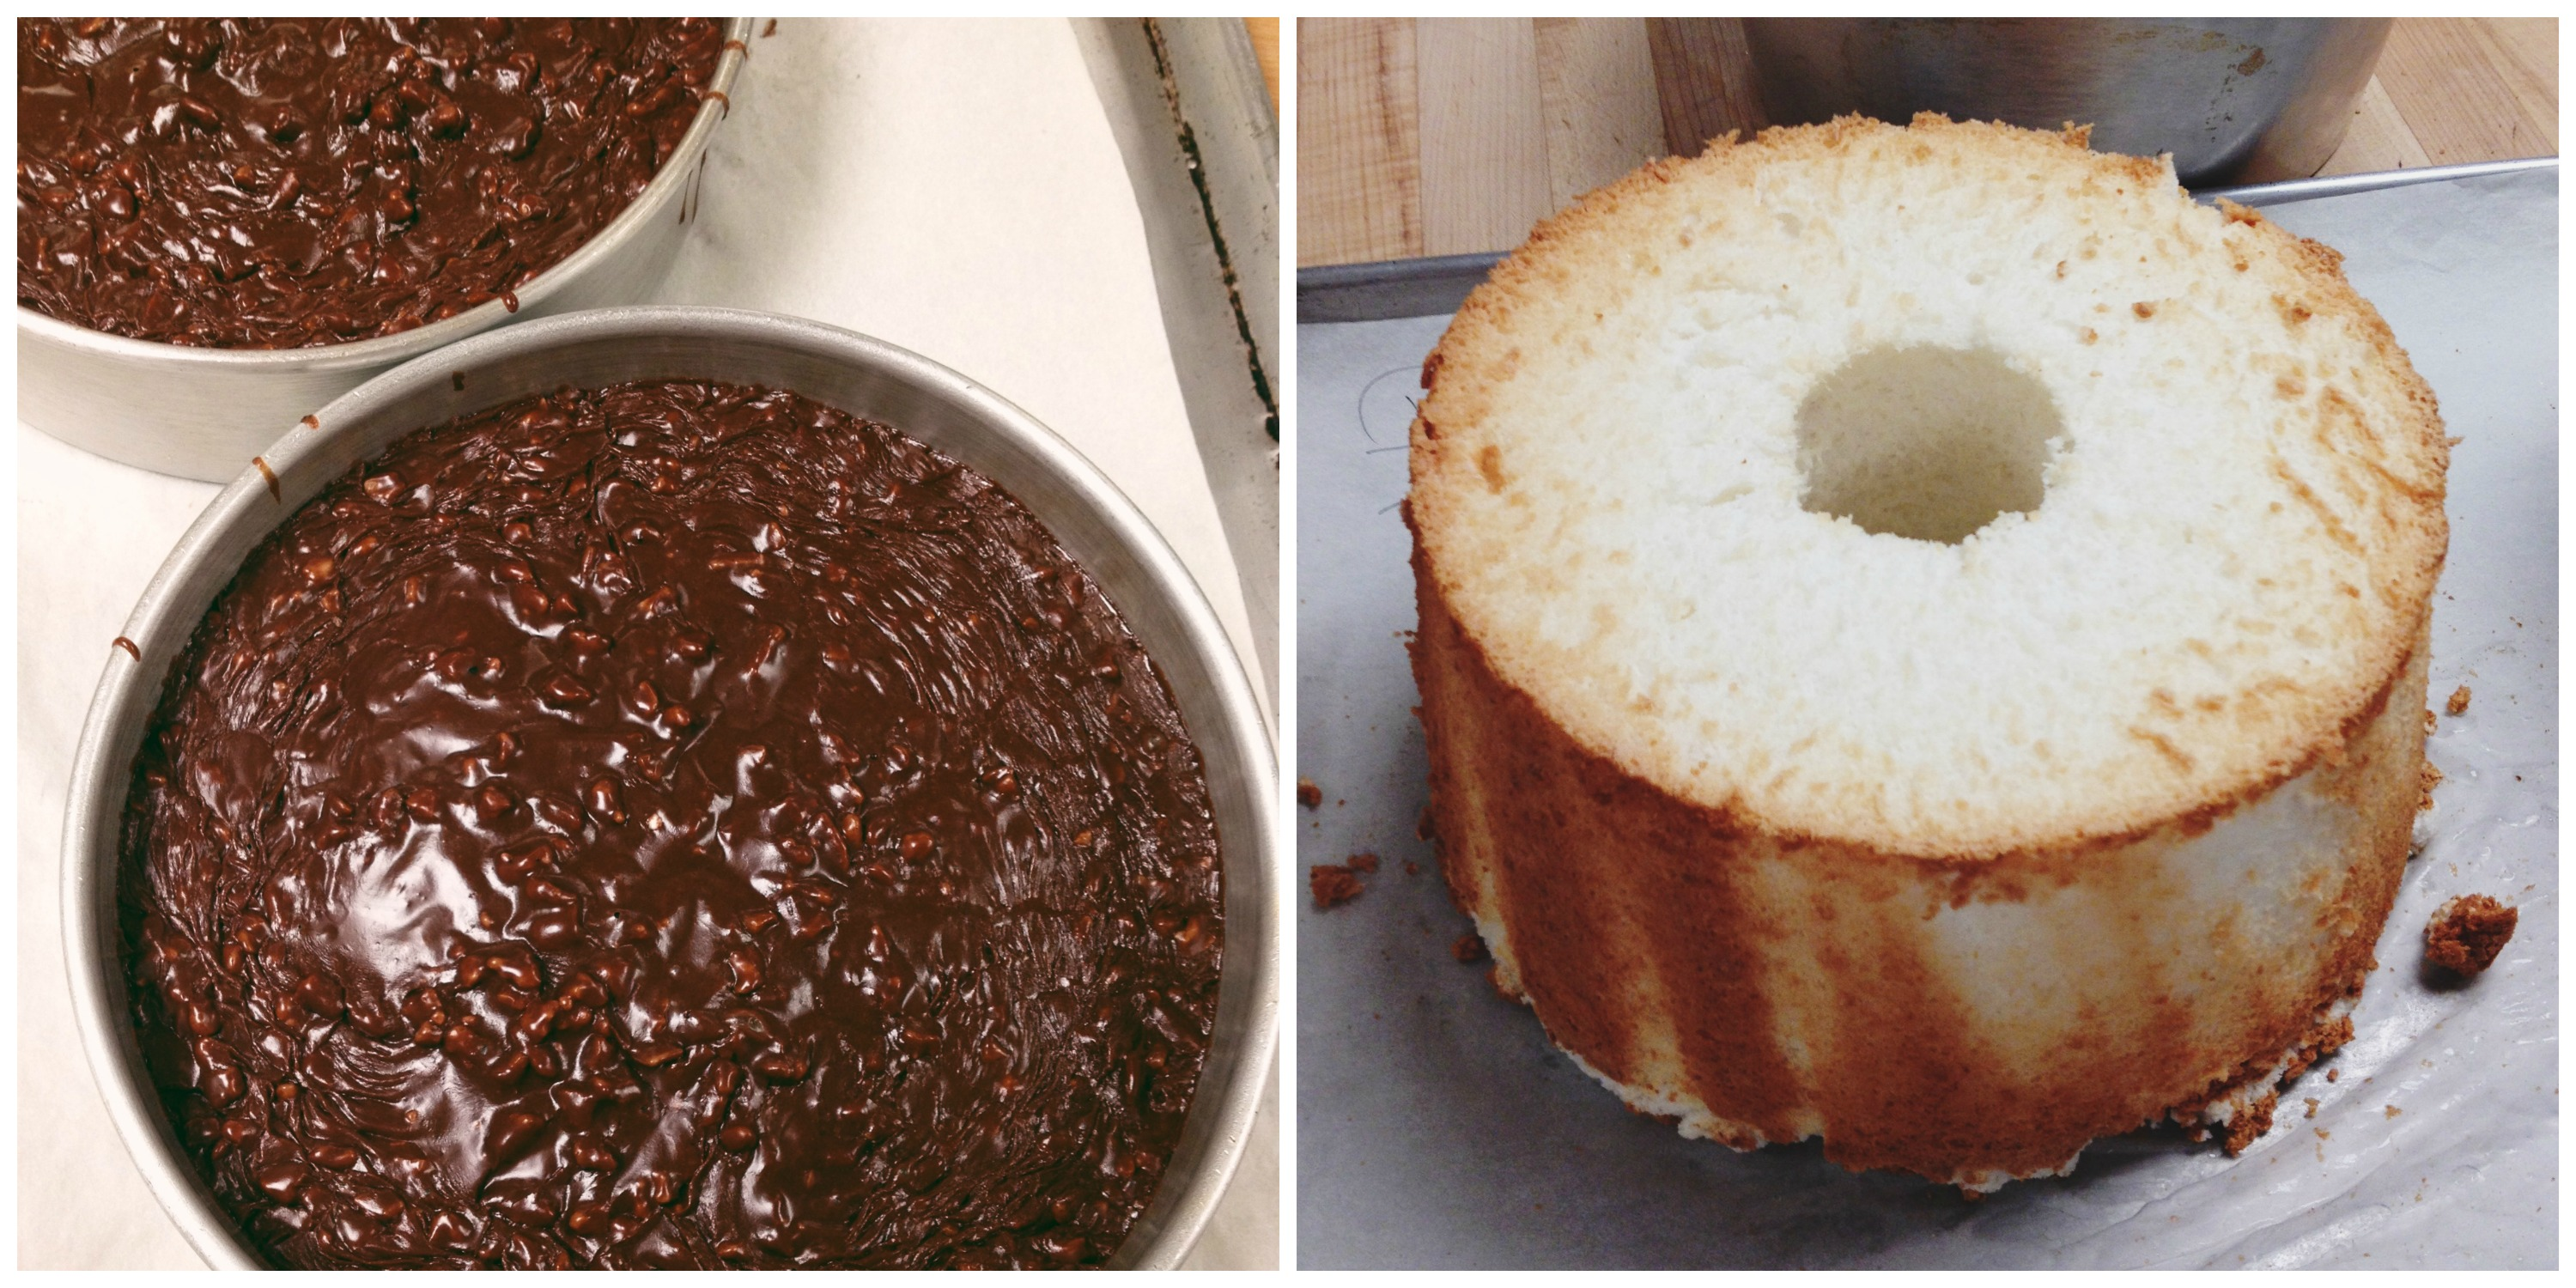 Grandma's Chocolate Cake and Angel Food Cake